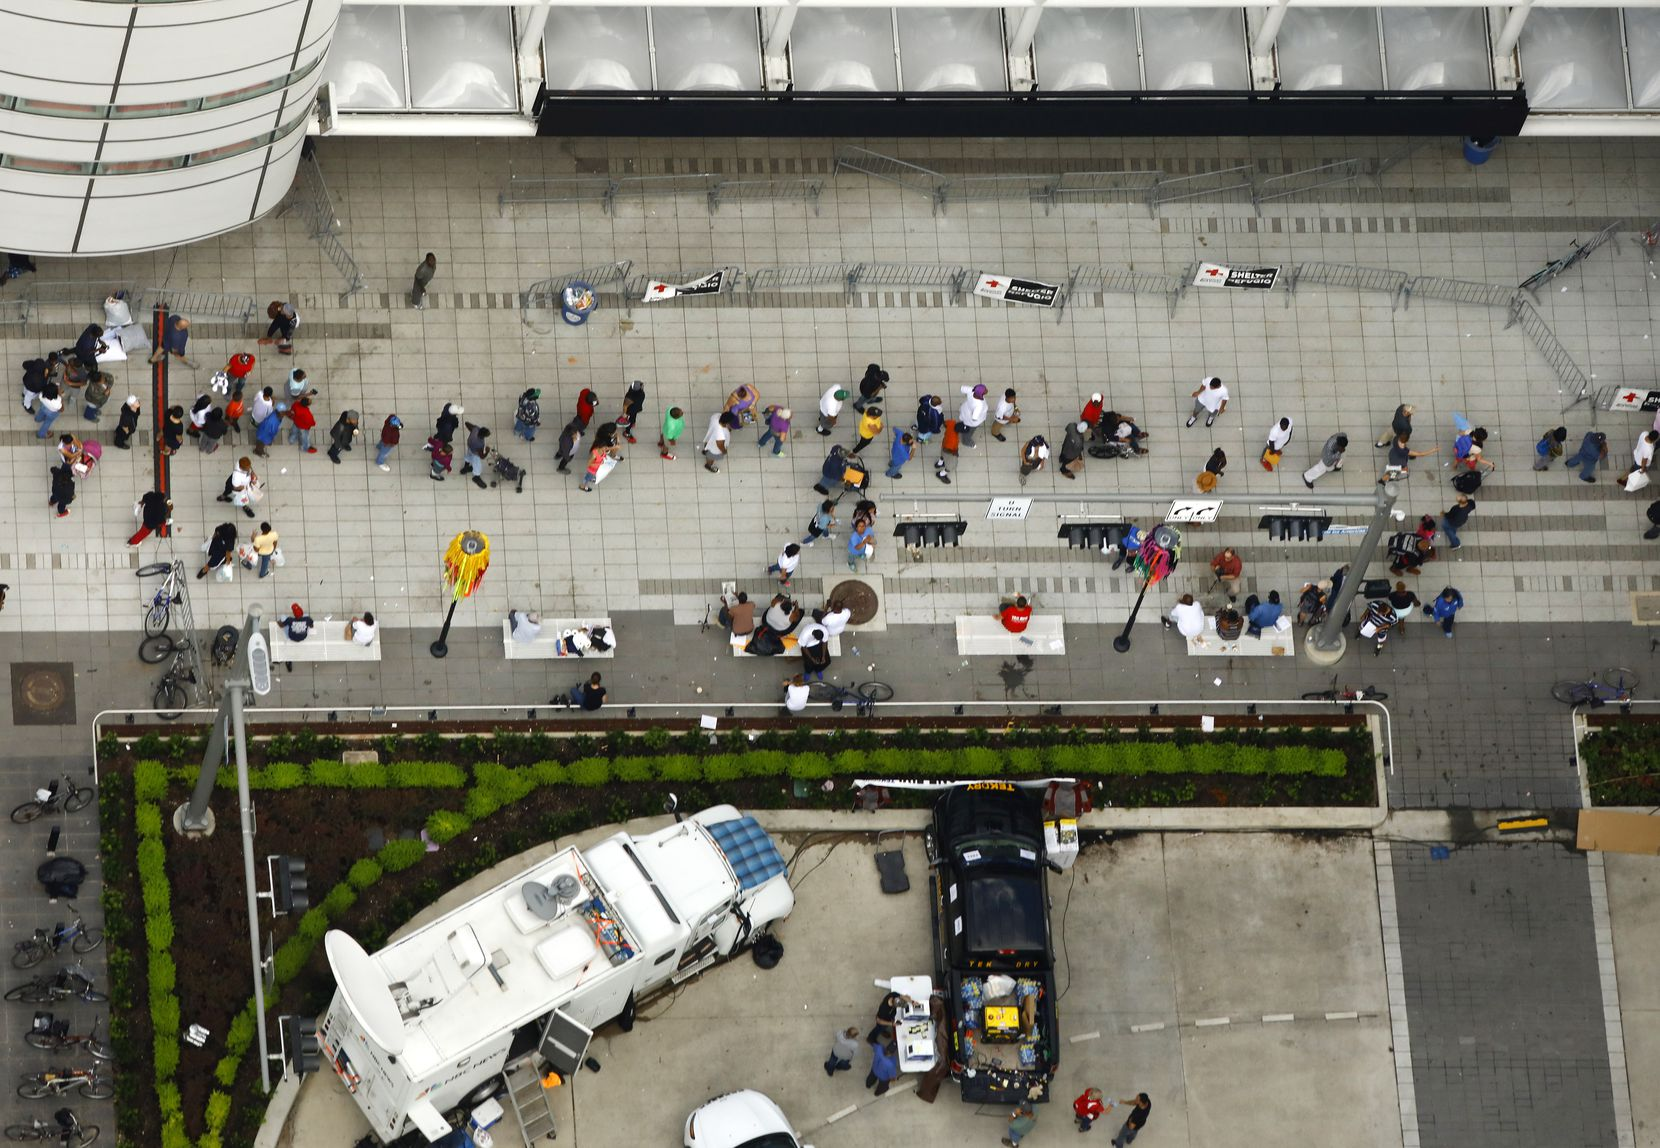 People line up outside the George R. Brown Convention Center, site of the Hurricane Harvey shelter in downtown Houston, Texas, Wednesday, August 30, 2017.